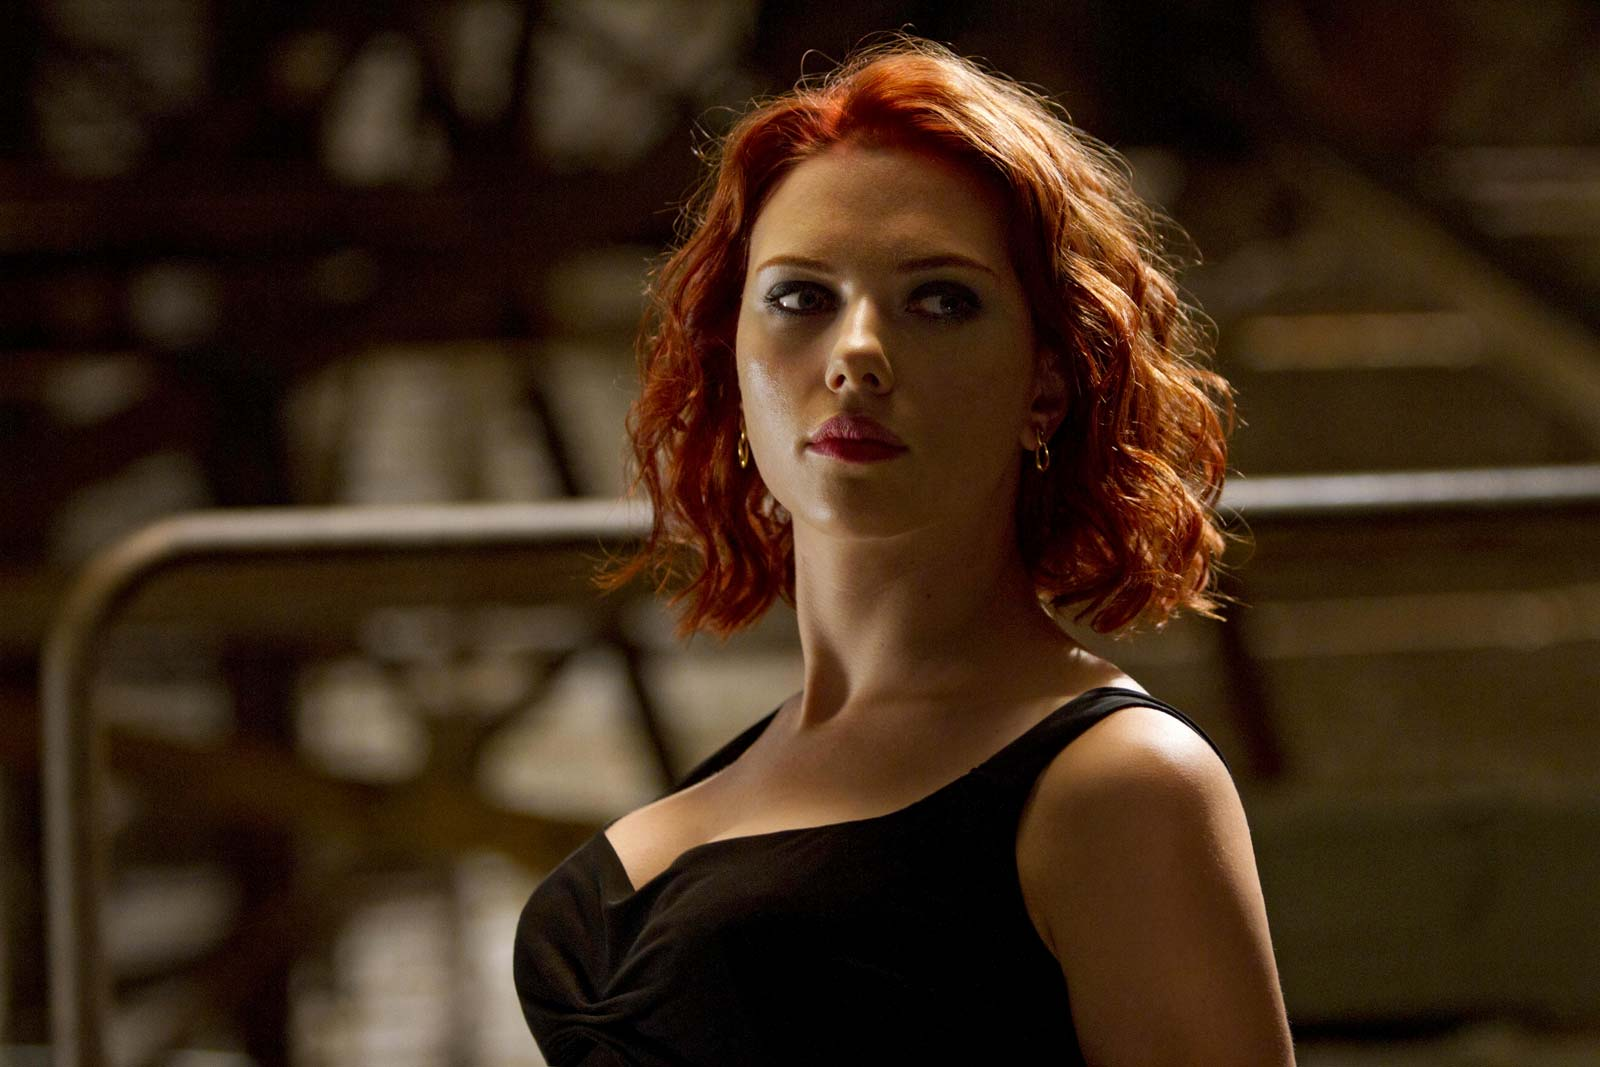 Scarlett Johansson Natasha Romanoff Avengers Age of 25 Things You Didn't Know About Les Misérables (2012)